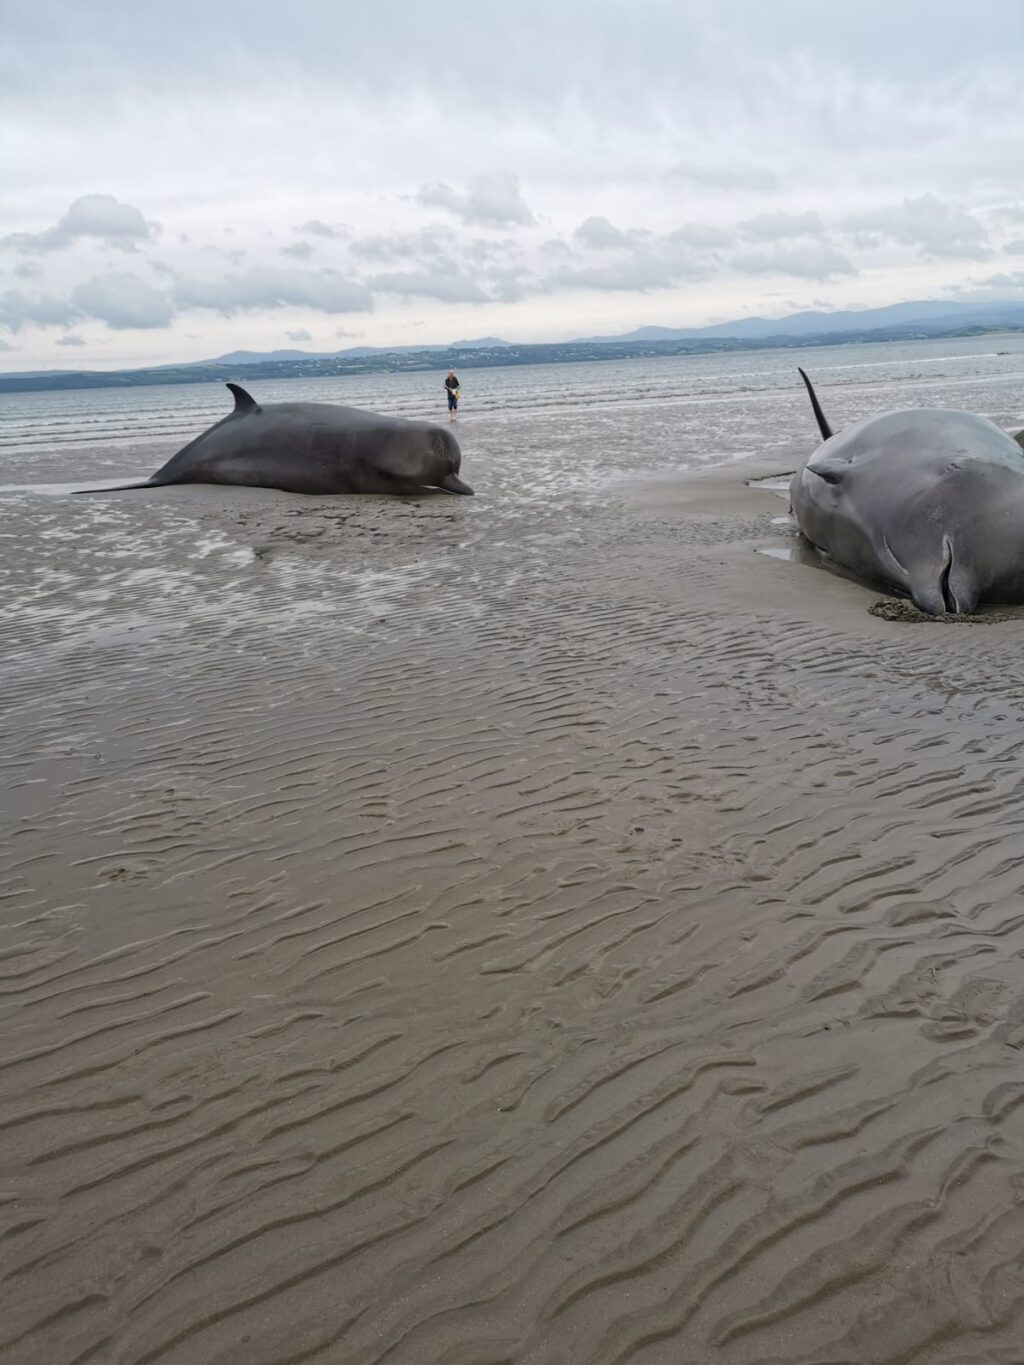 Photo Credit to Nicola Coyle with the Irish Whale and Dolphin Group